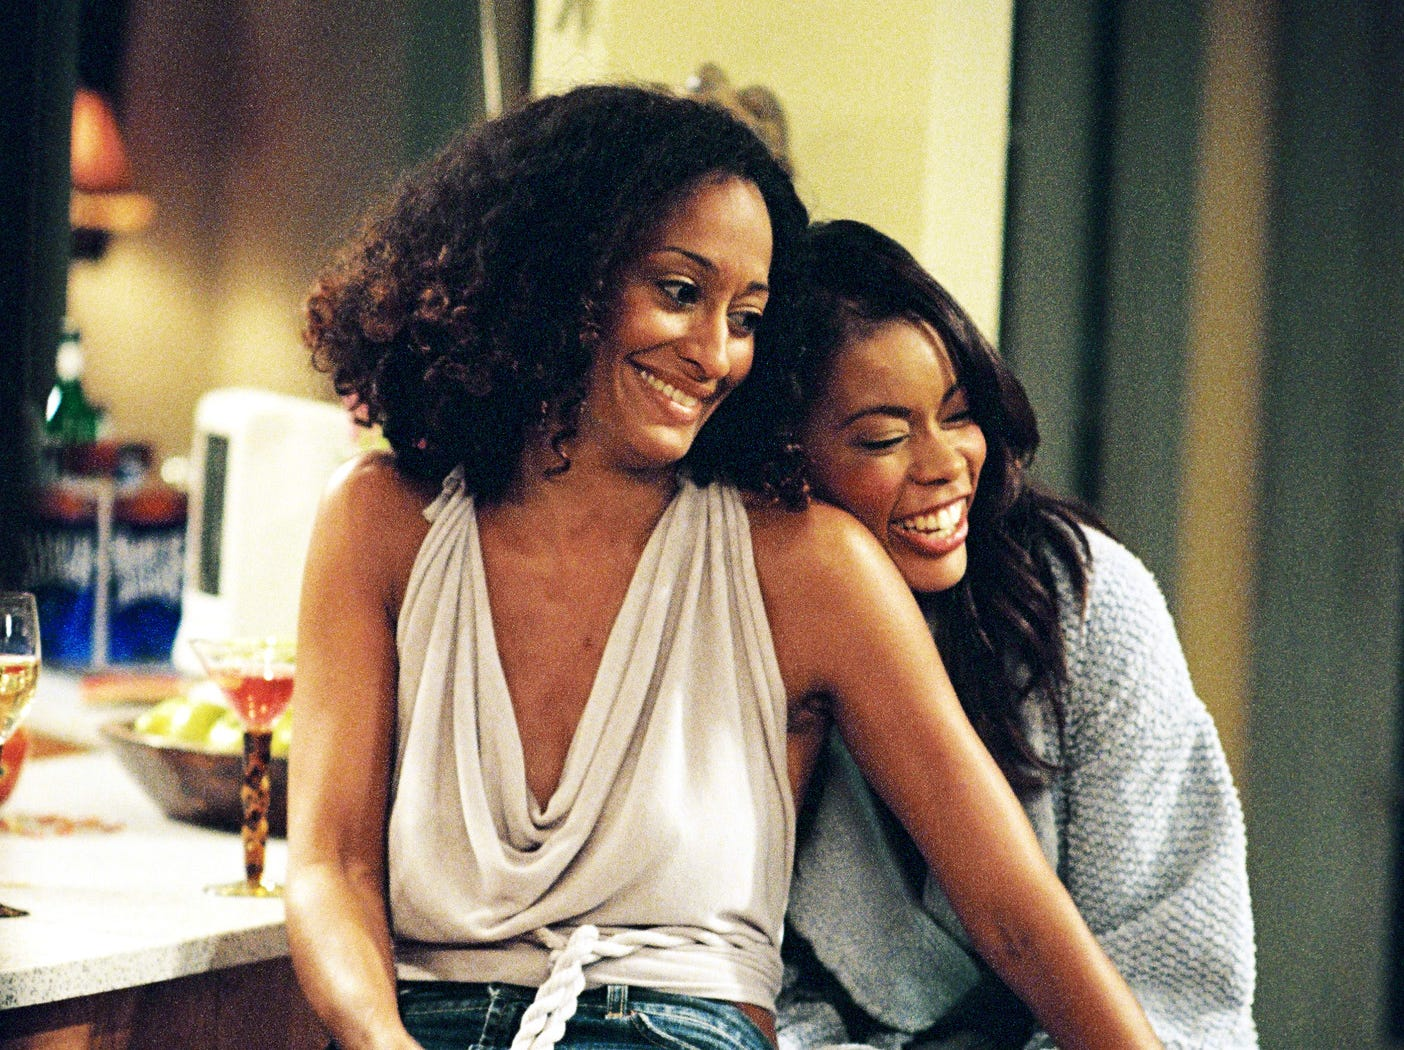 Tracee Ellis Ross (left) and Golden Brooks in GIRLFRIENDS on UPN.   --- DATE TAKEN: 2002  By Ron Tom   Paramount Pictures        HO      - handout ORG XMIT: PX81698